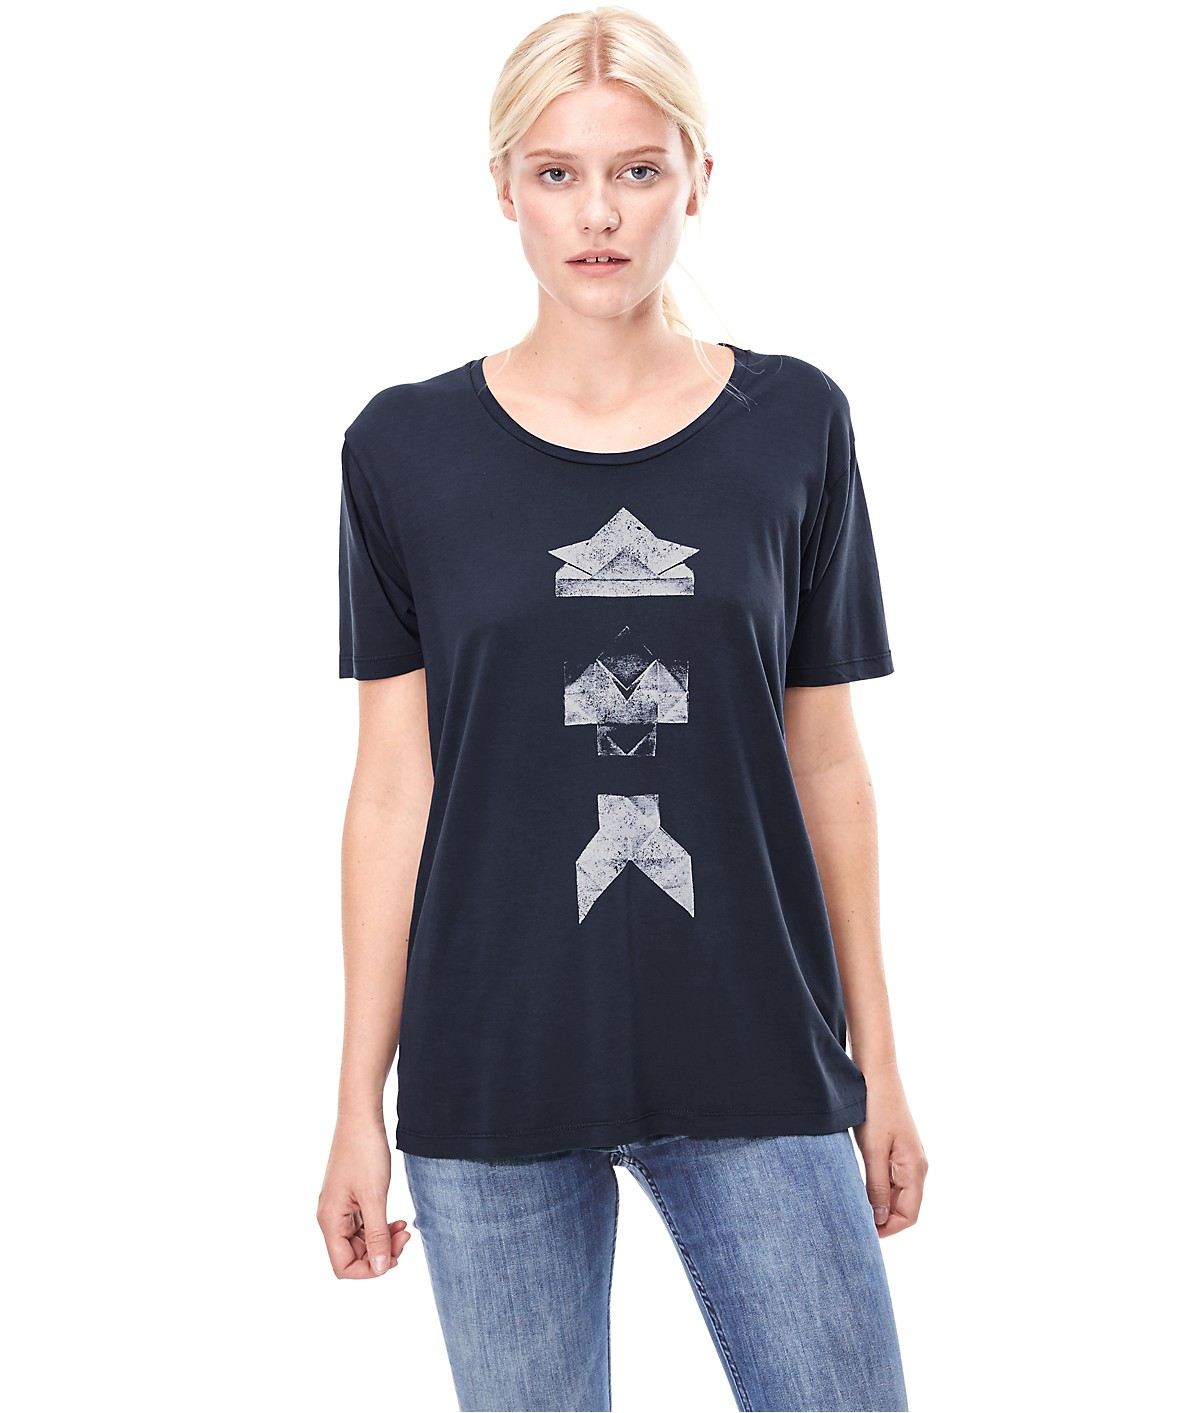 T-shirt W1161101 from liebeskind